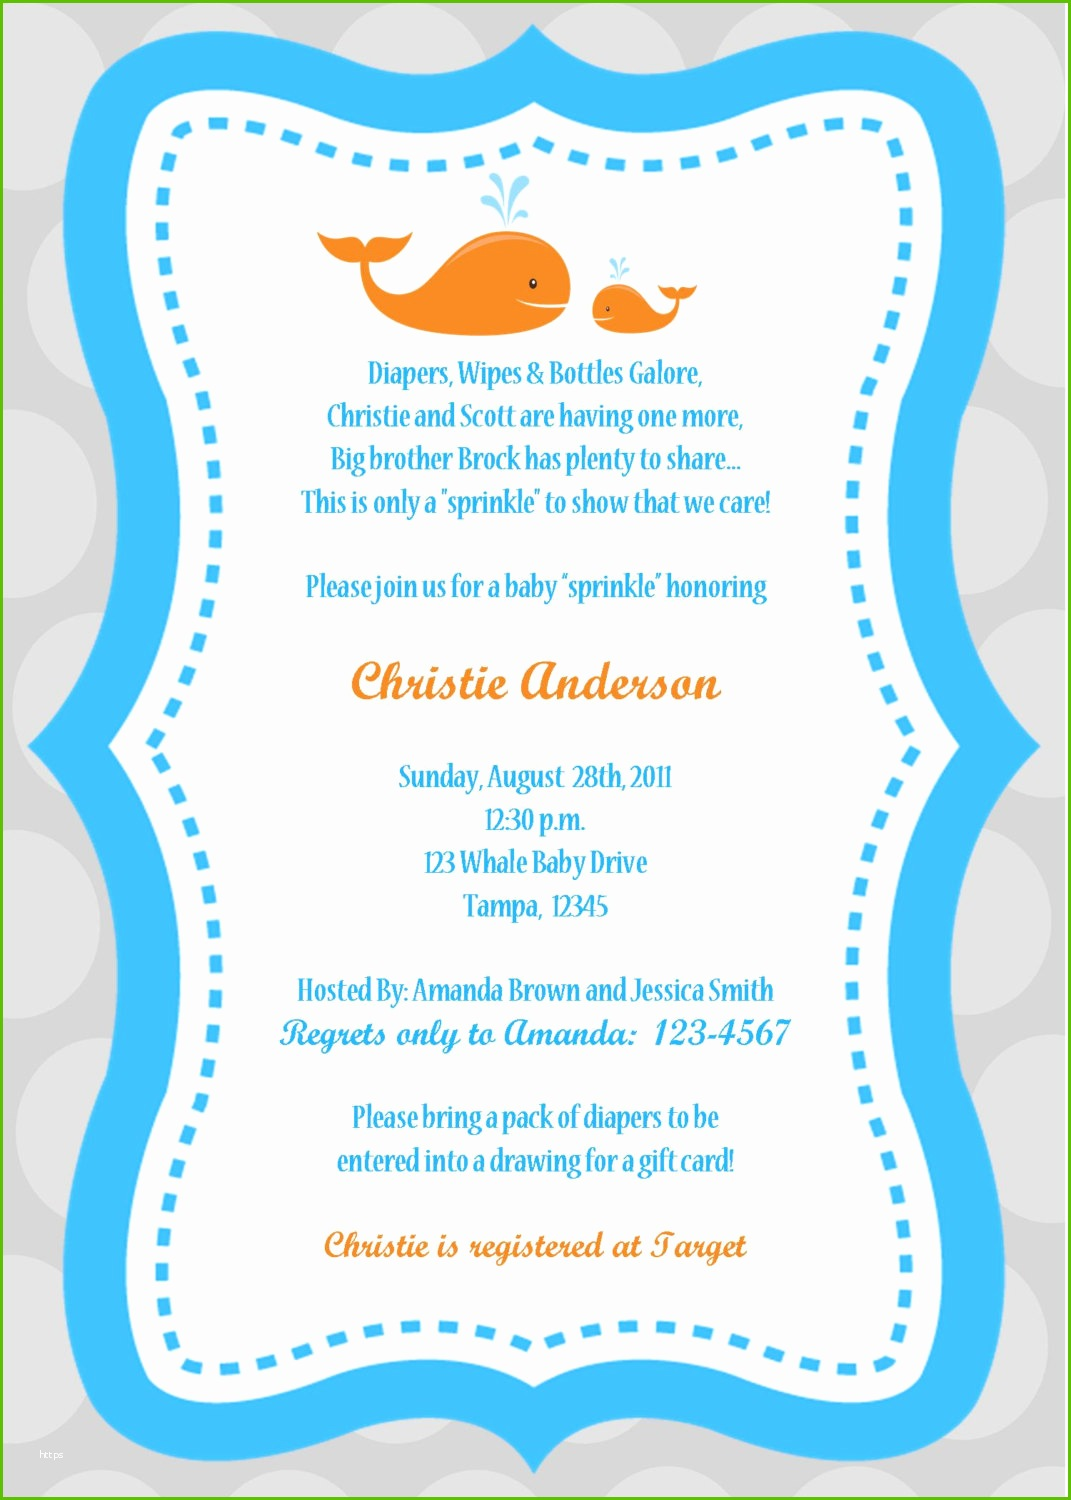 Full Size of Baby Shower:delightful Baby Shower Invitation Wording Picture Designs Baby Shower Invitation Wording Who To Invite To Baby Shower Astonishing Baby Shower Invitation Wording For A Boy